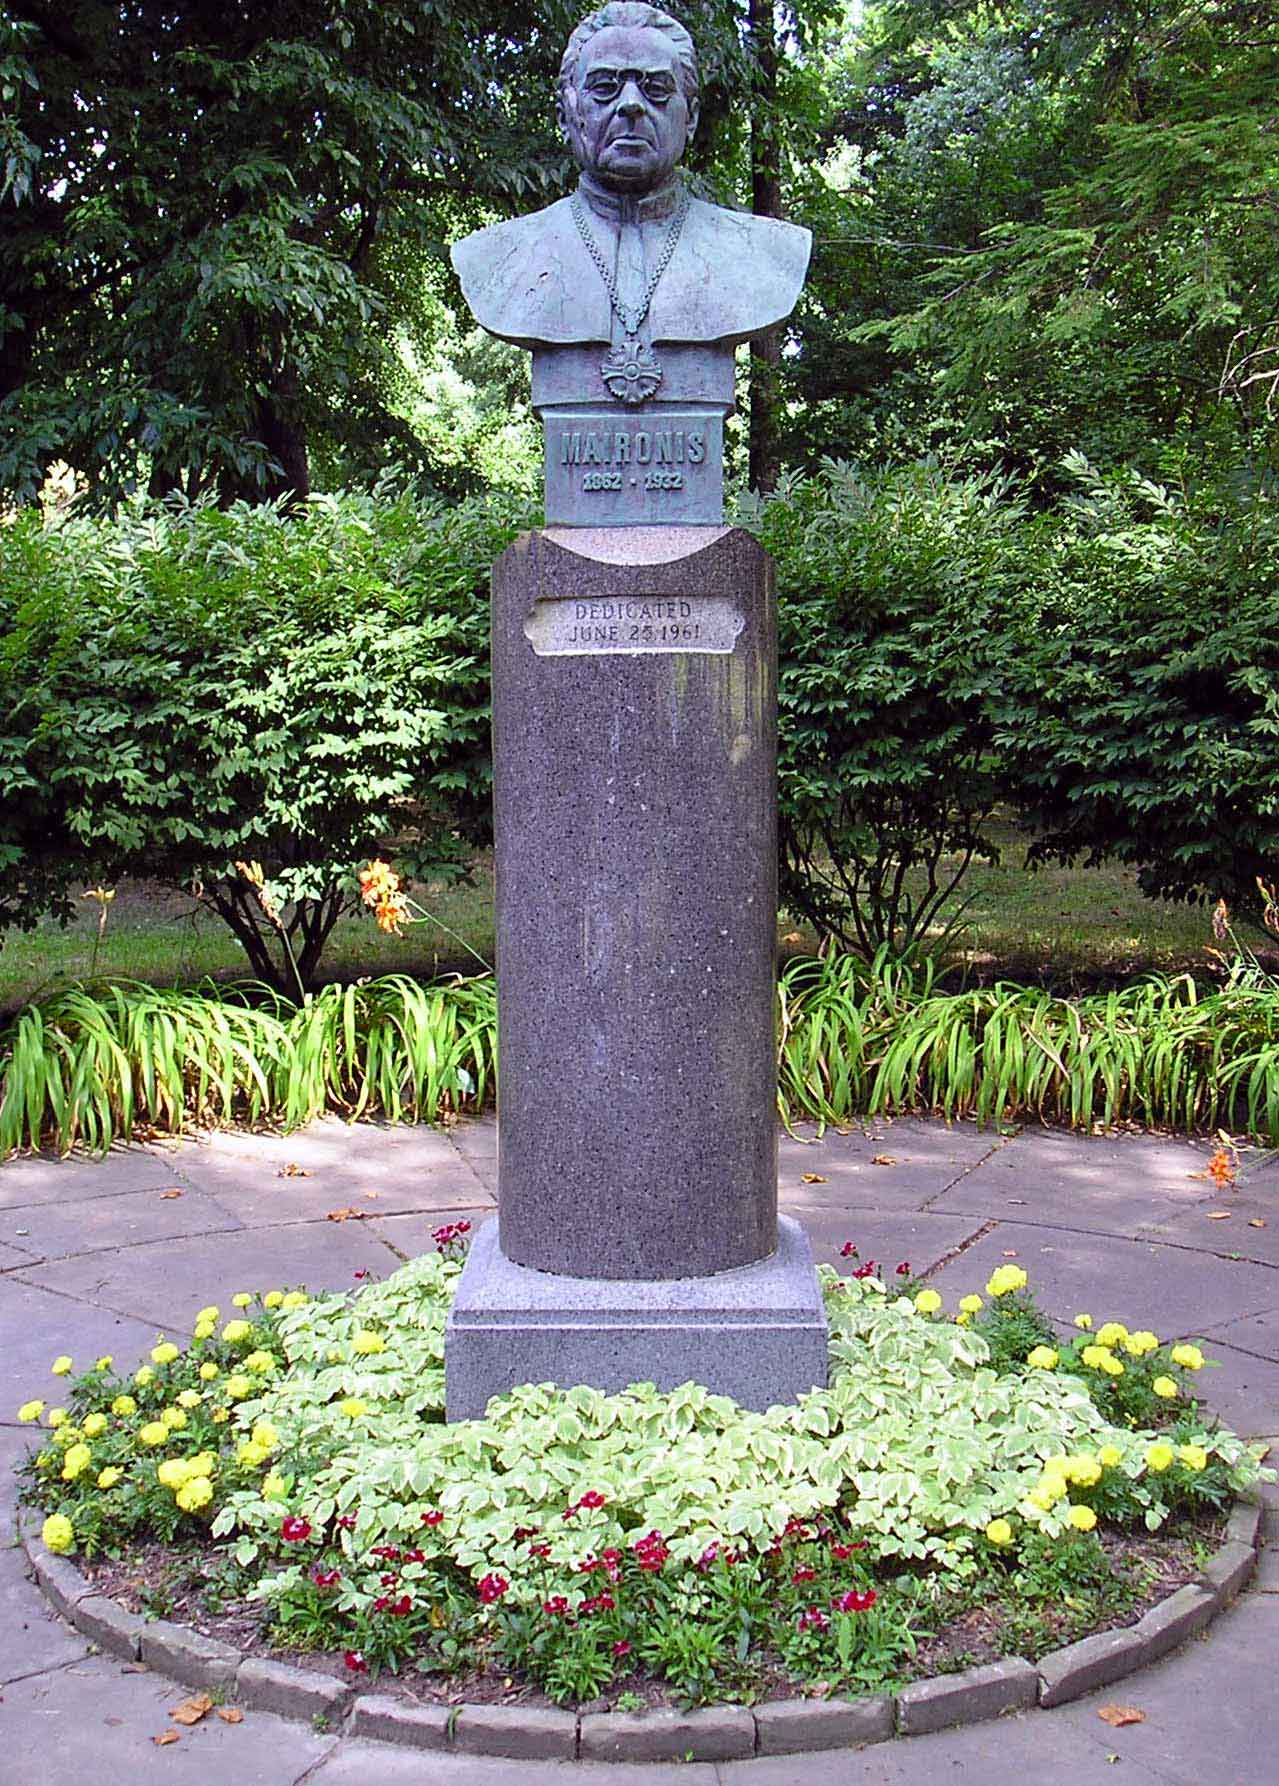 Statue of Lithuanian Poet Maciulis Maironis in the Lithuanian Cultural Garden